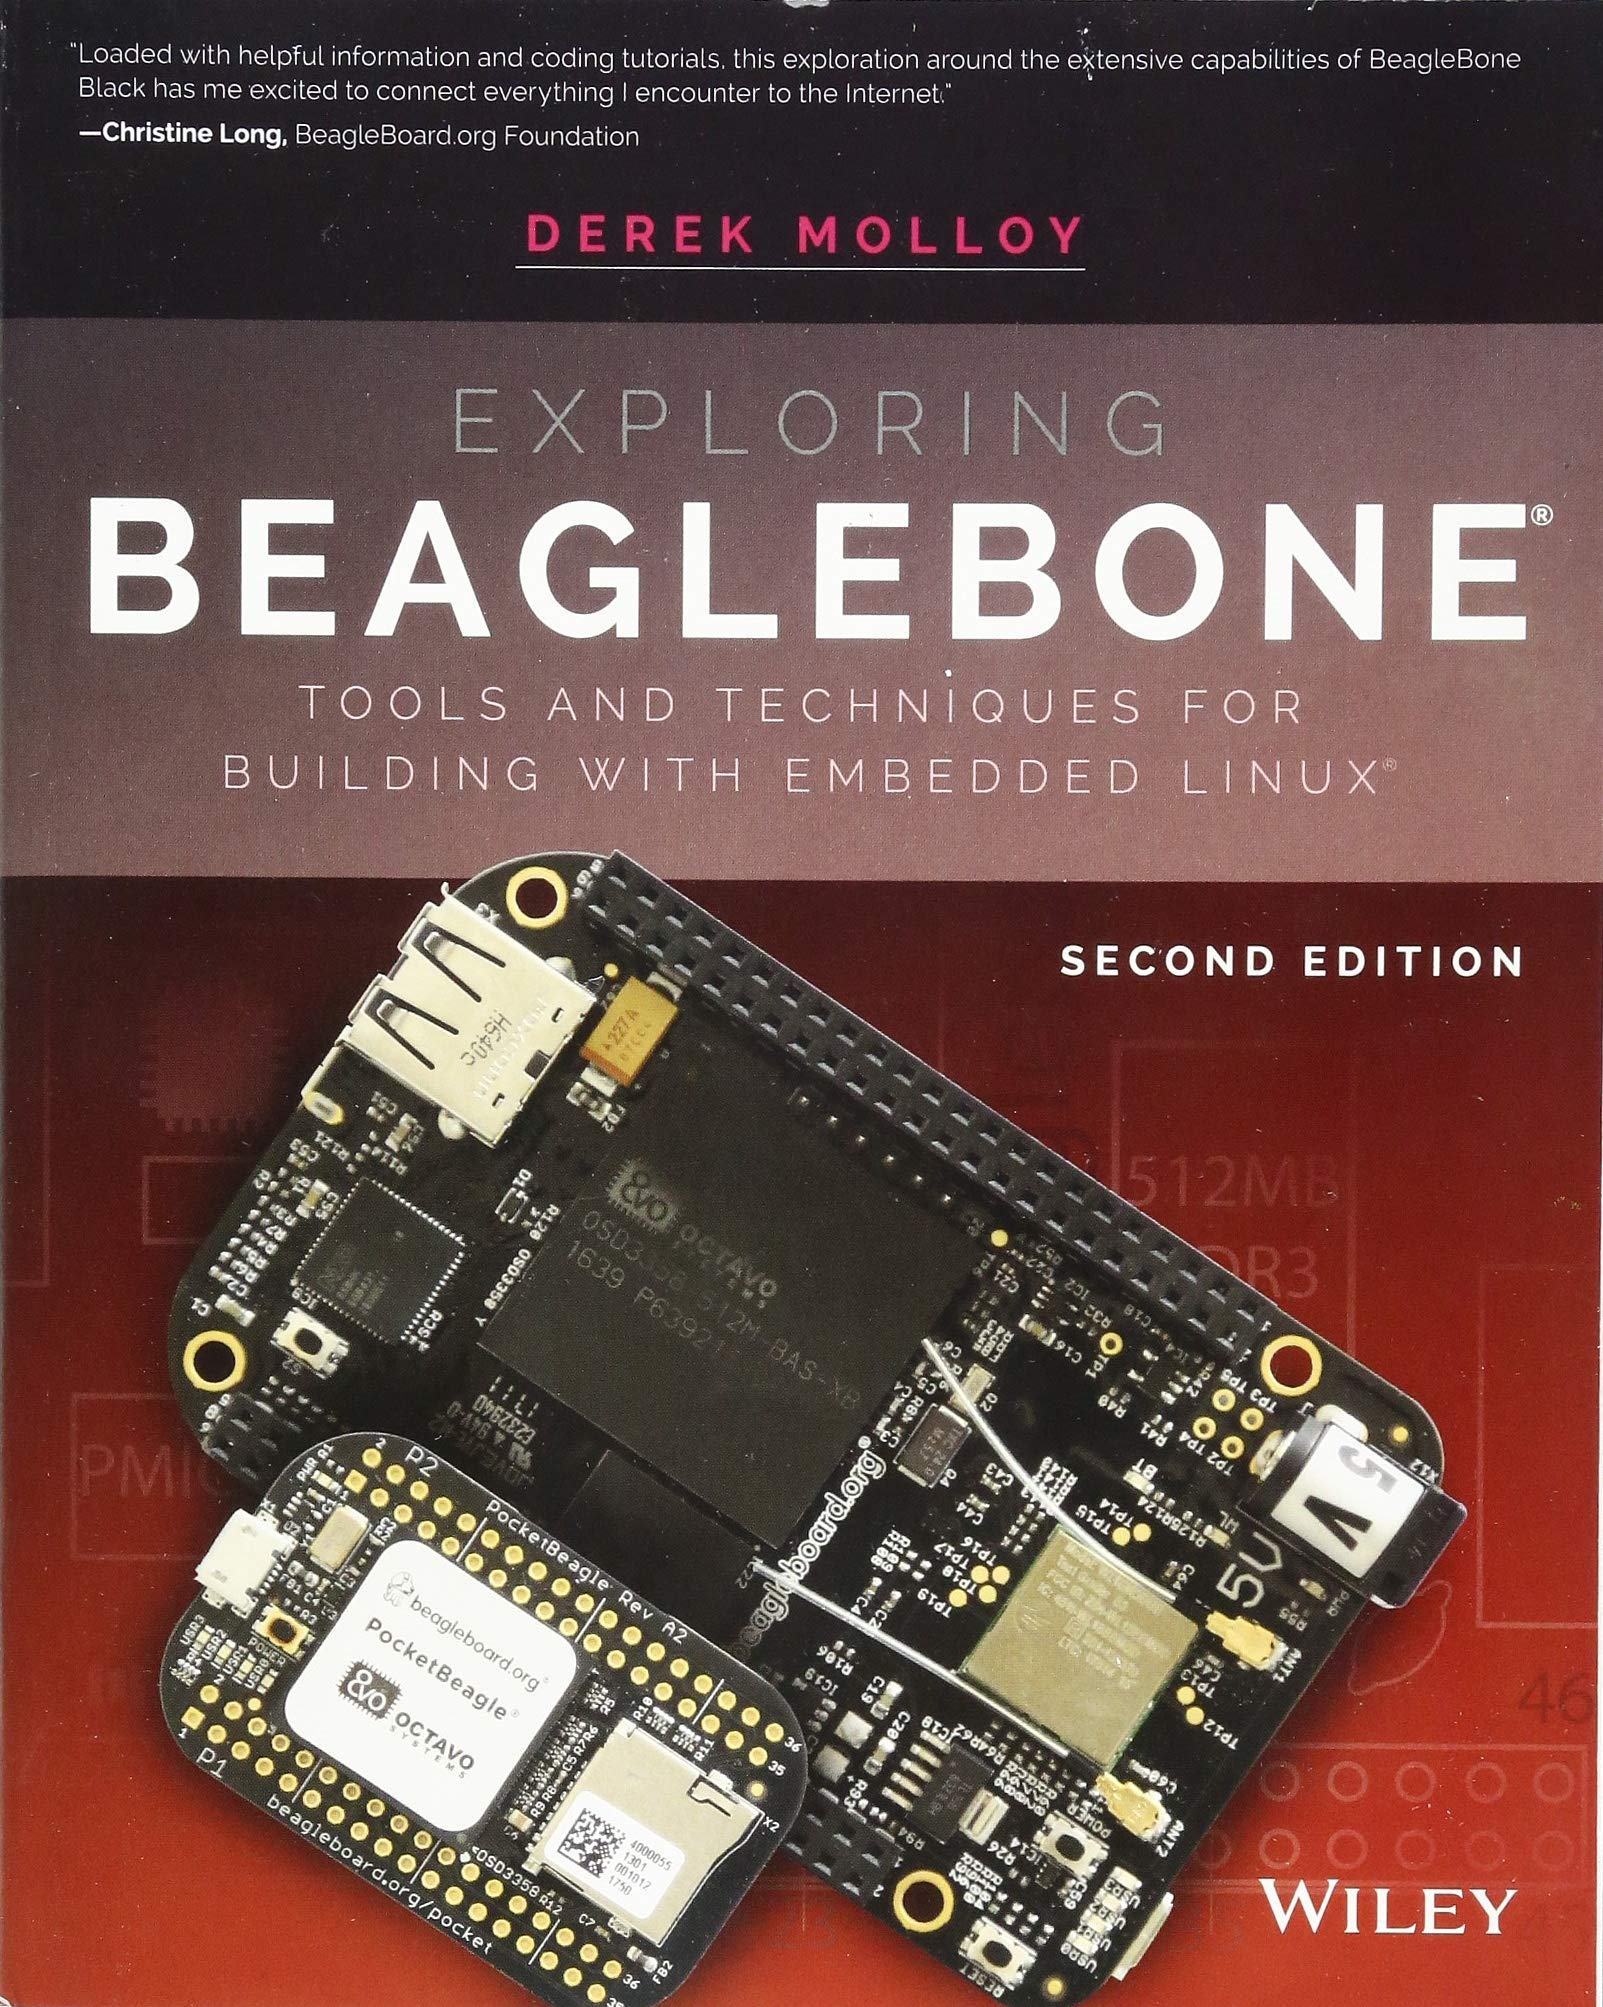 Exploring BeagleBone: Tools and Techniques for Building with Embedded Linux por Derek Molloy